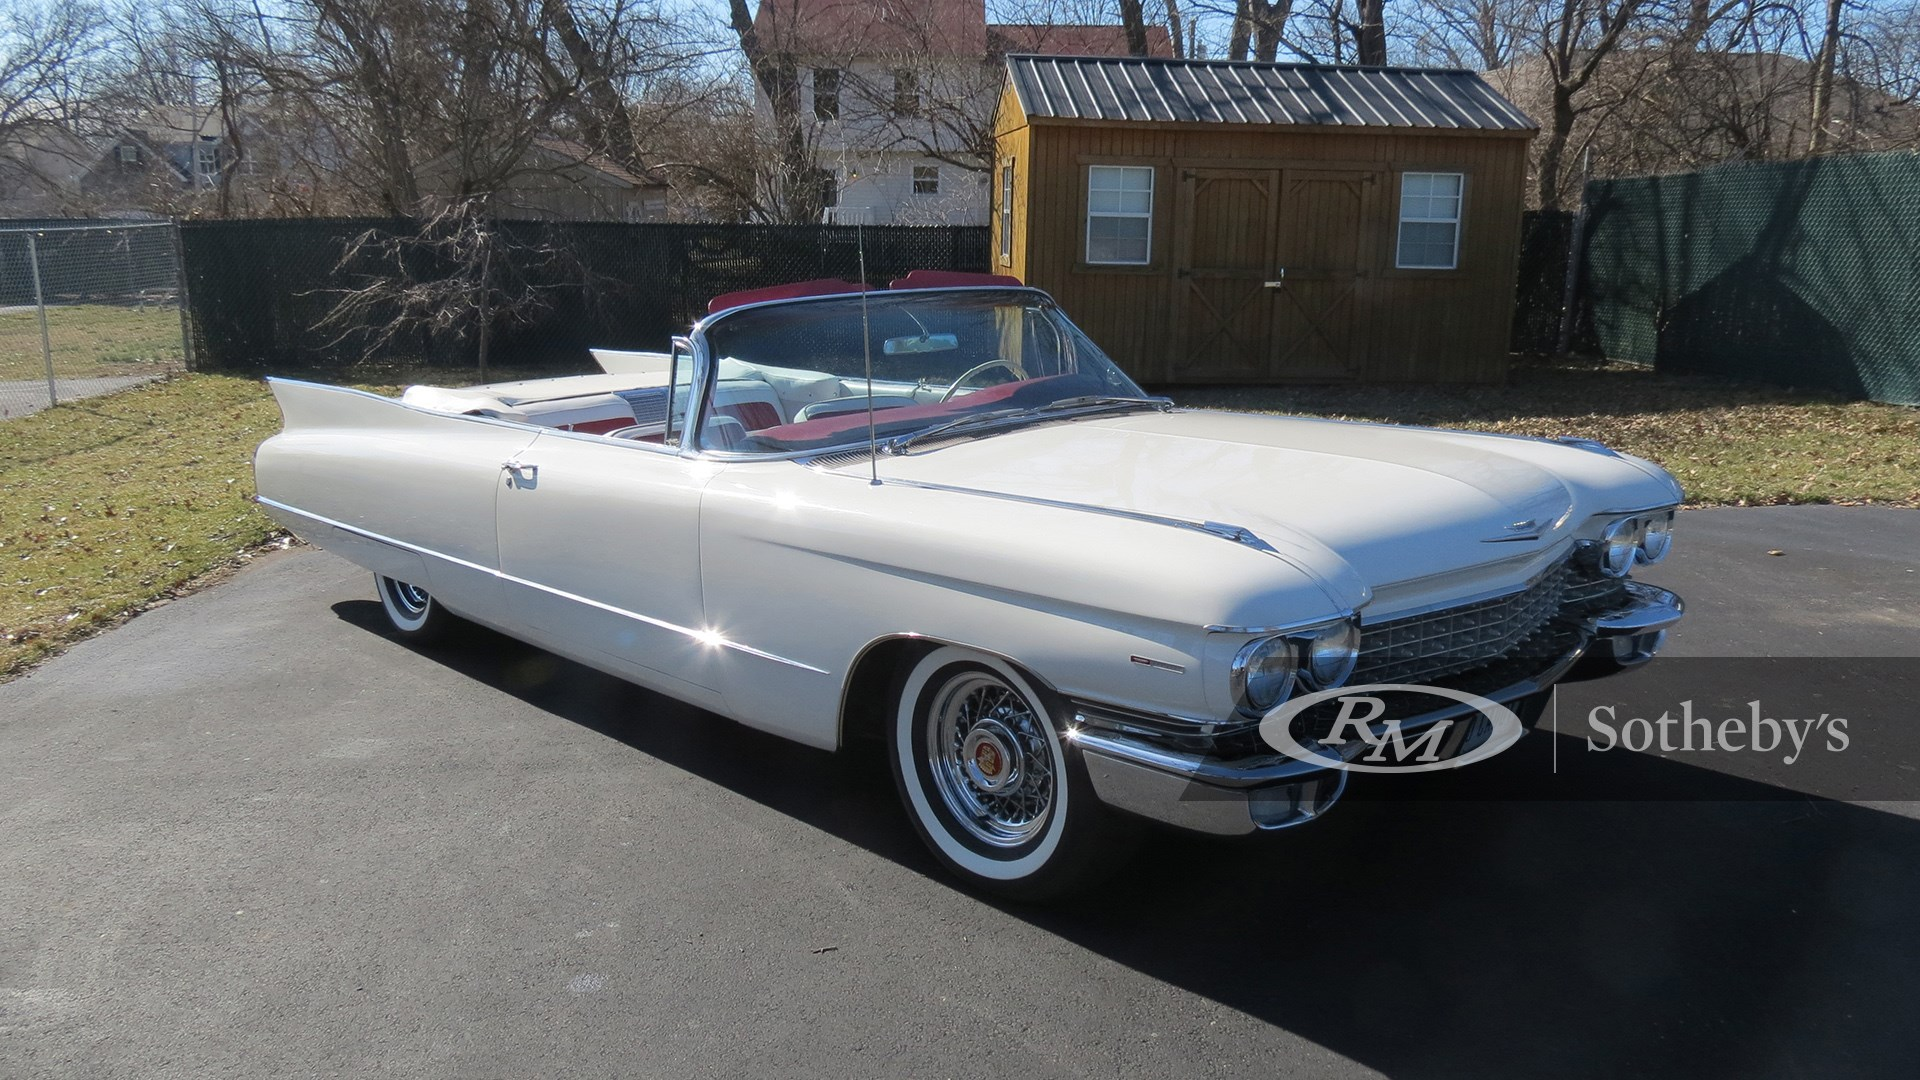 1960 Cadillac Series 62 Convertible available at RM Sotheby's Online Only Open Roads April Auction 2021